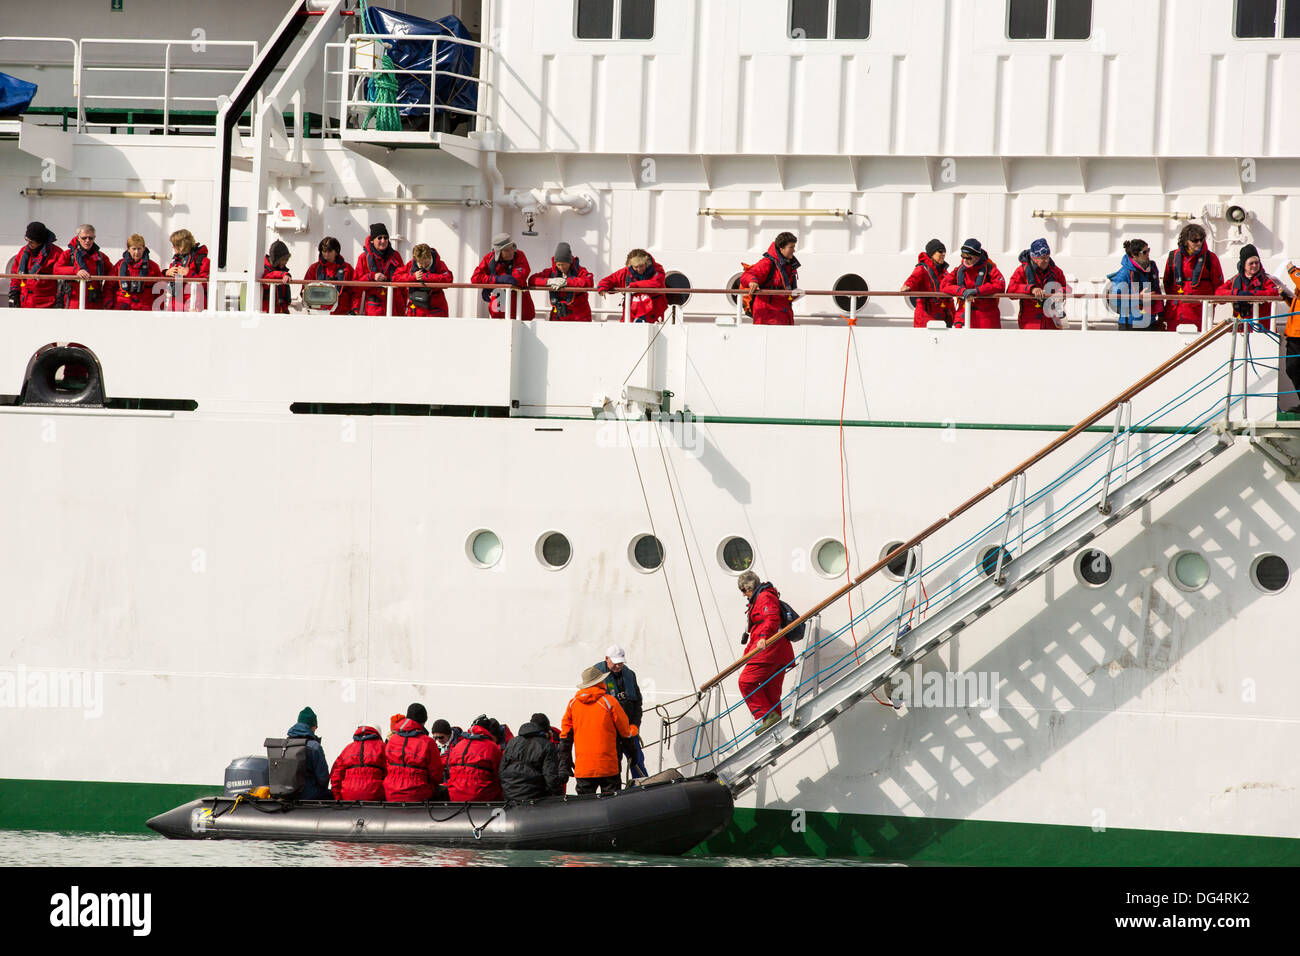 The Russian research vessel, AkademiK Sergey Vavilov an ice strengthened ship on an expedition cruise to Northern Svalbard - Stock Image